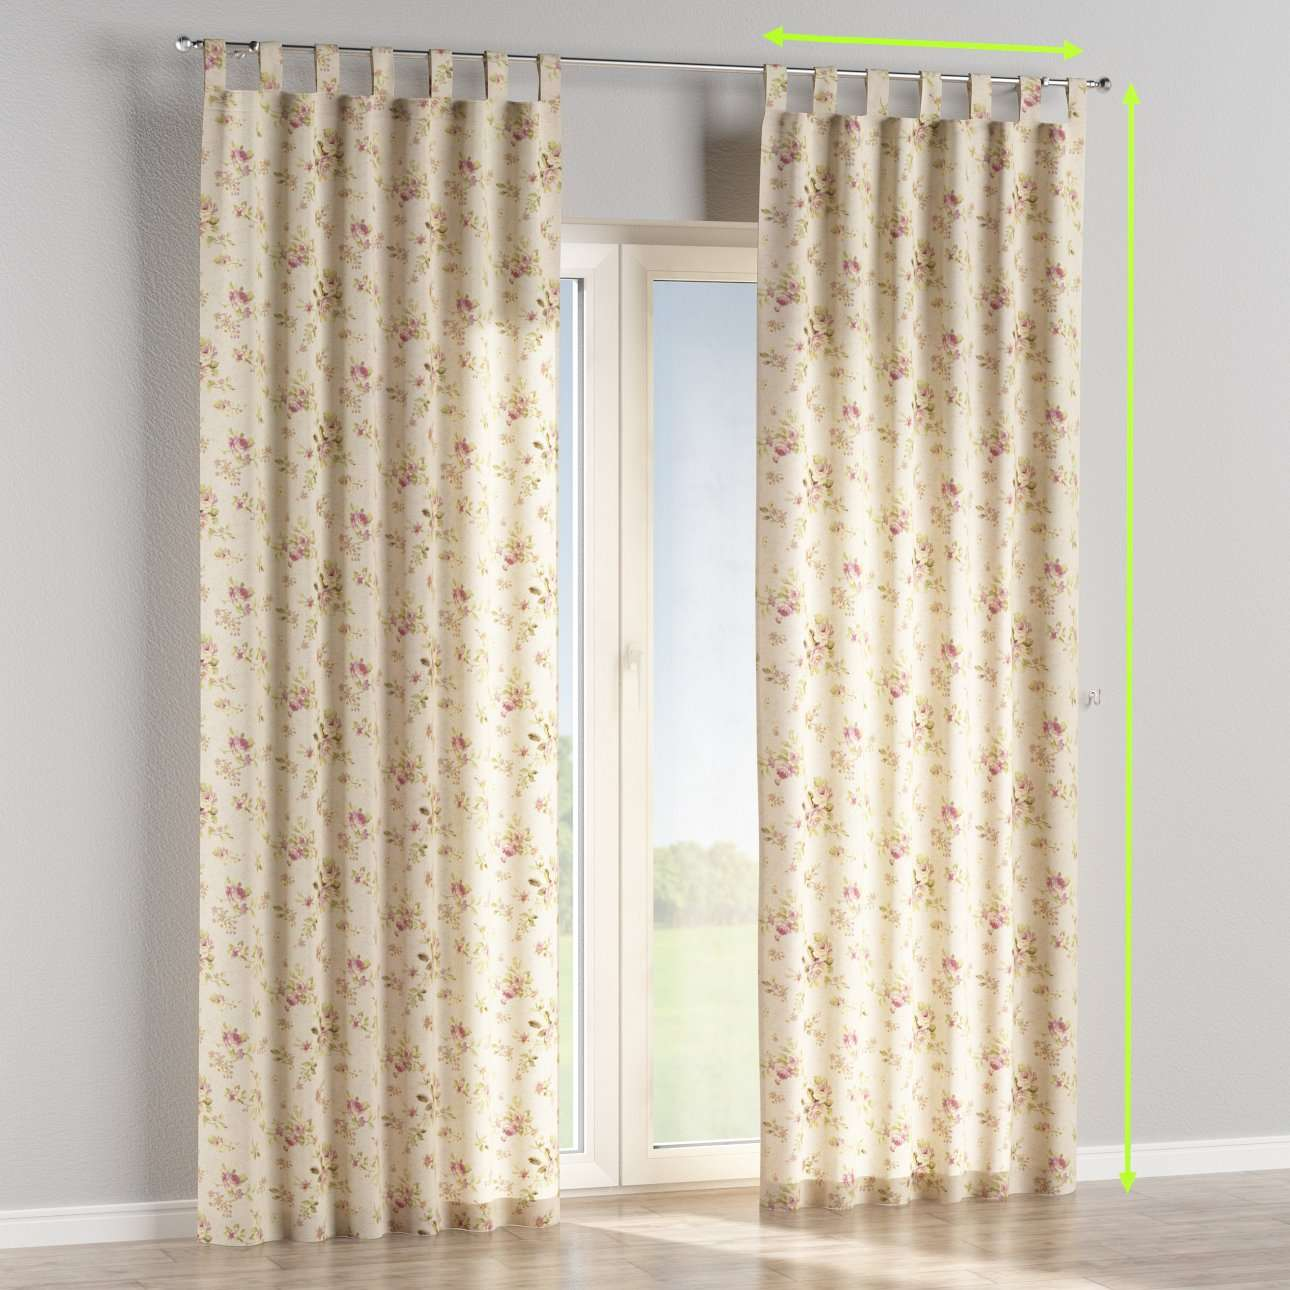 Tab top curtains in collection Londres, fabric: 122-07